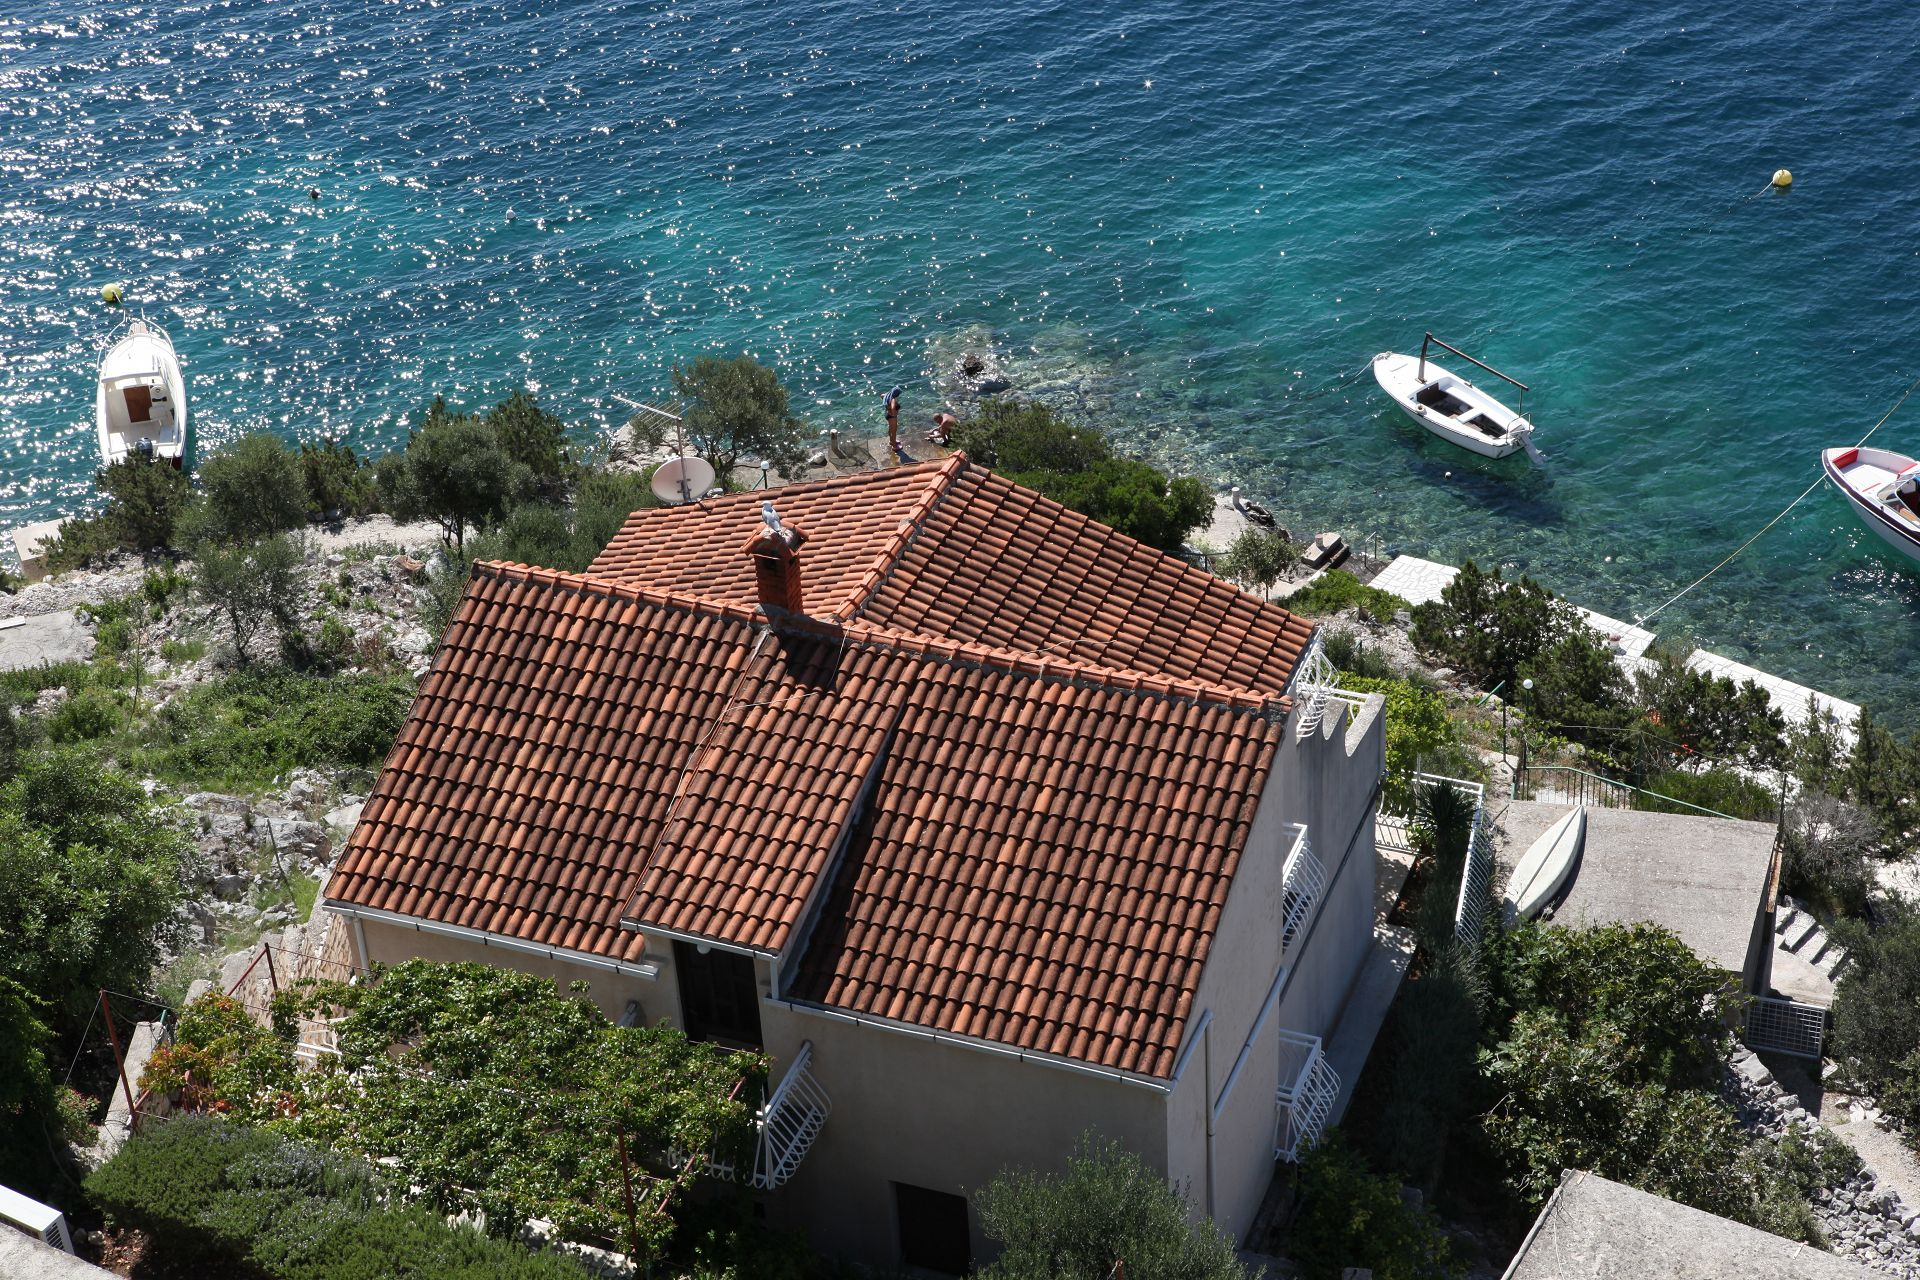 Mare - Cove Ljubljeva (Vinisce) - Accommodation in coves Croatia